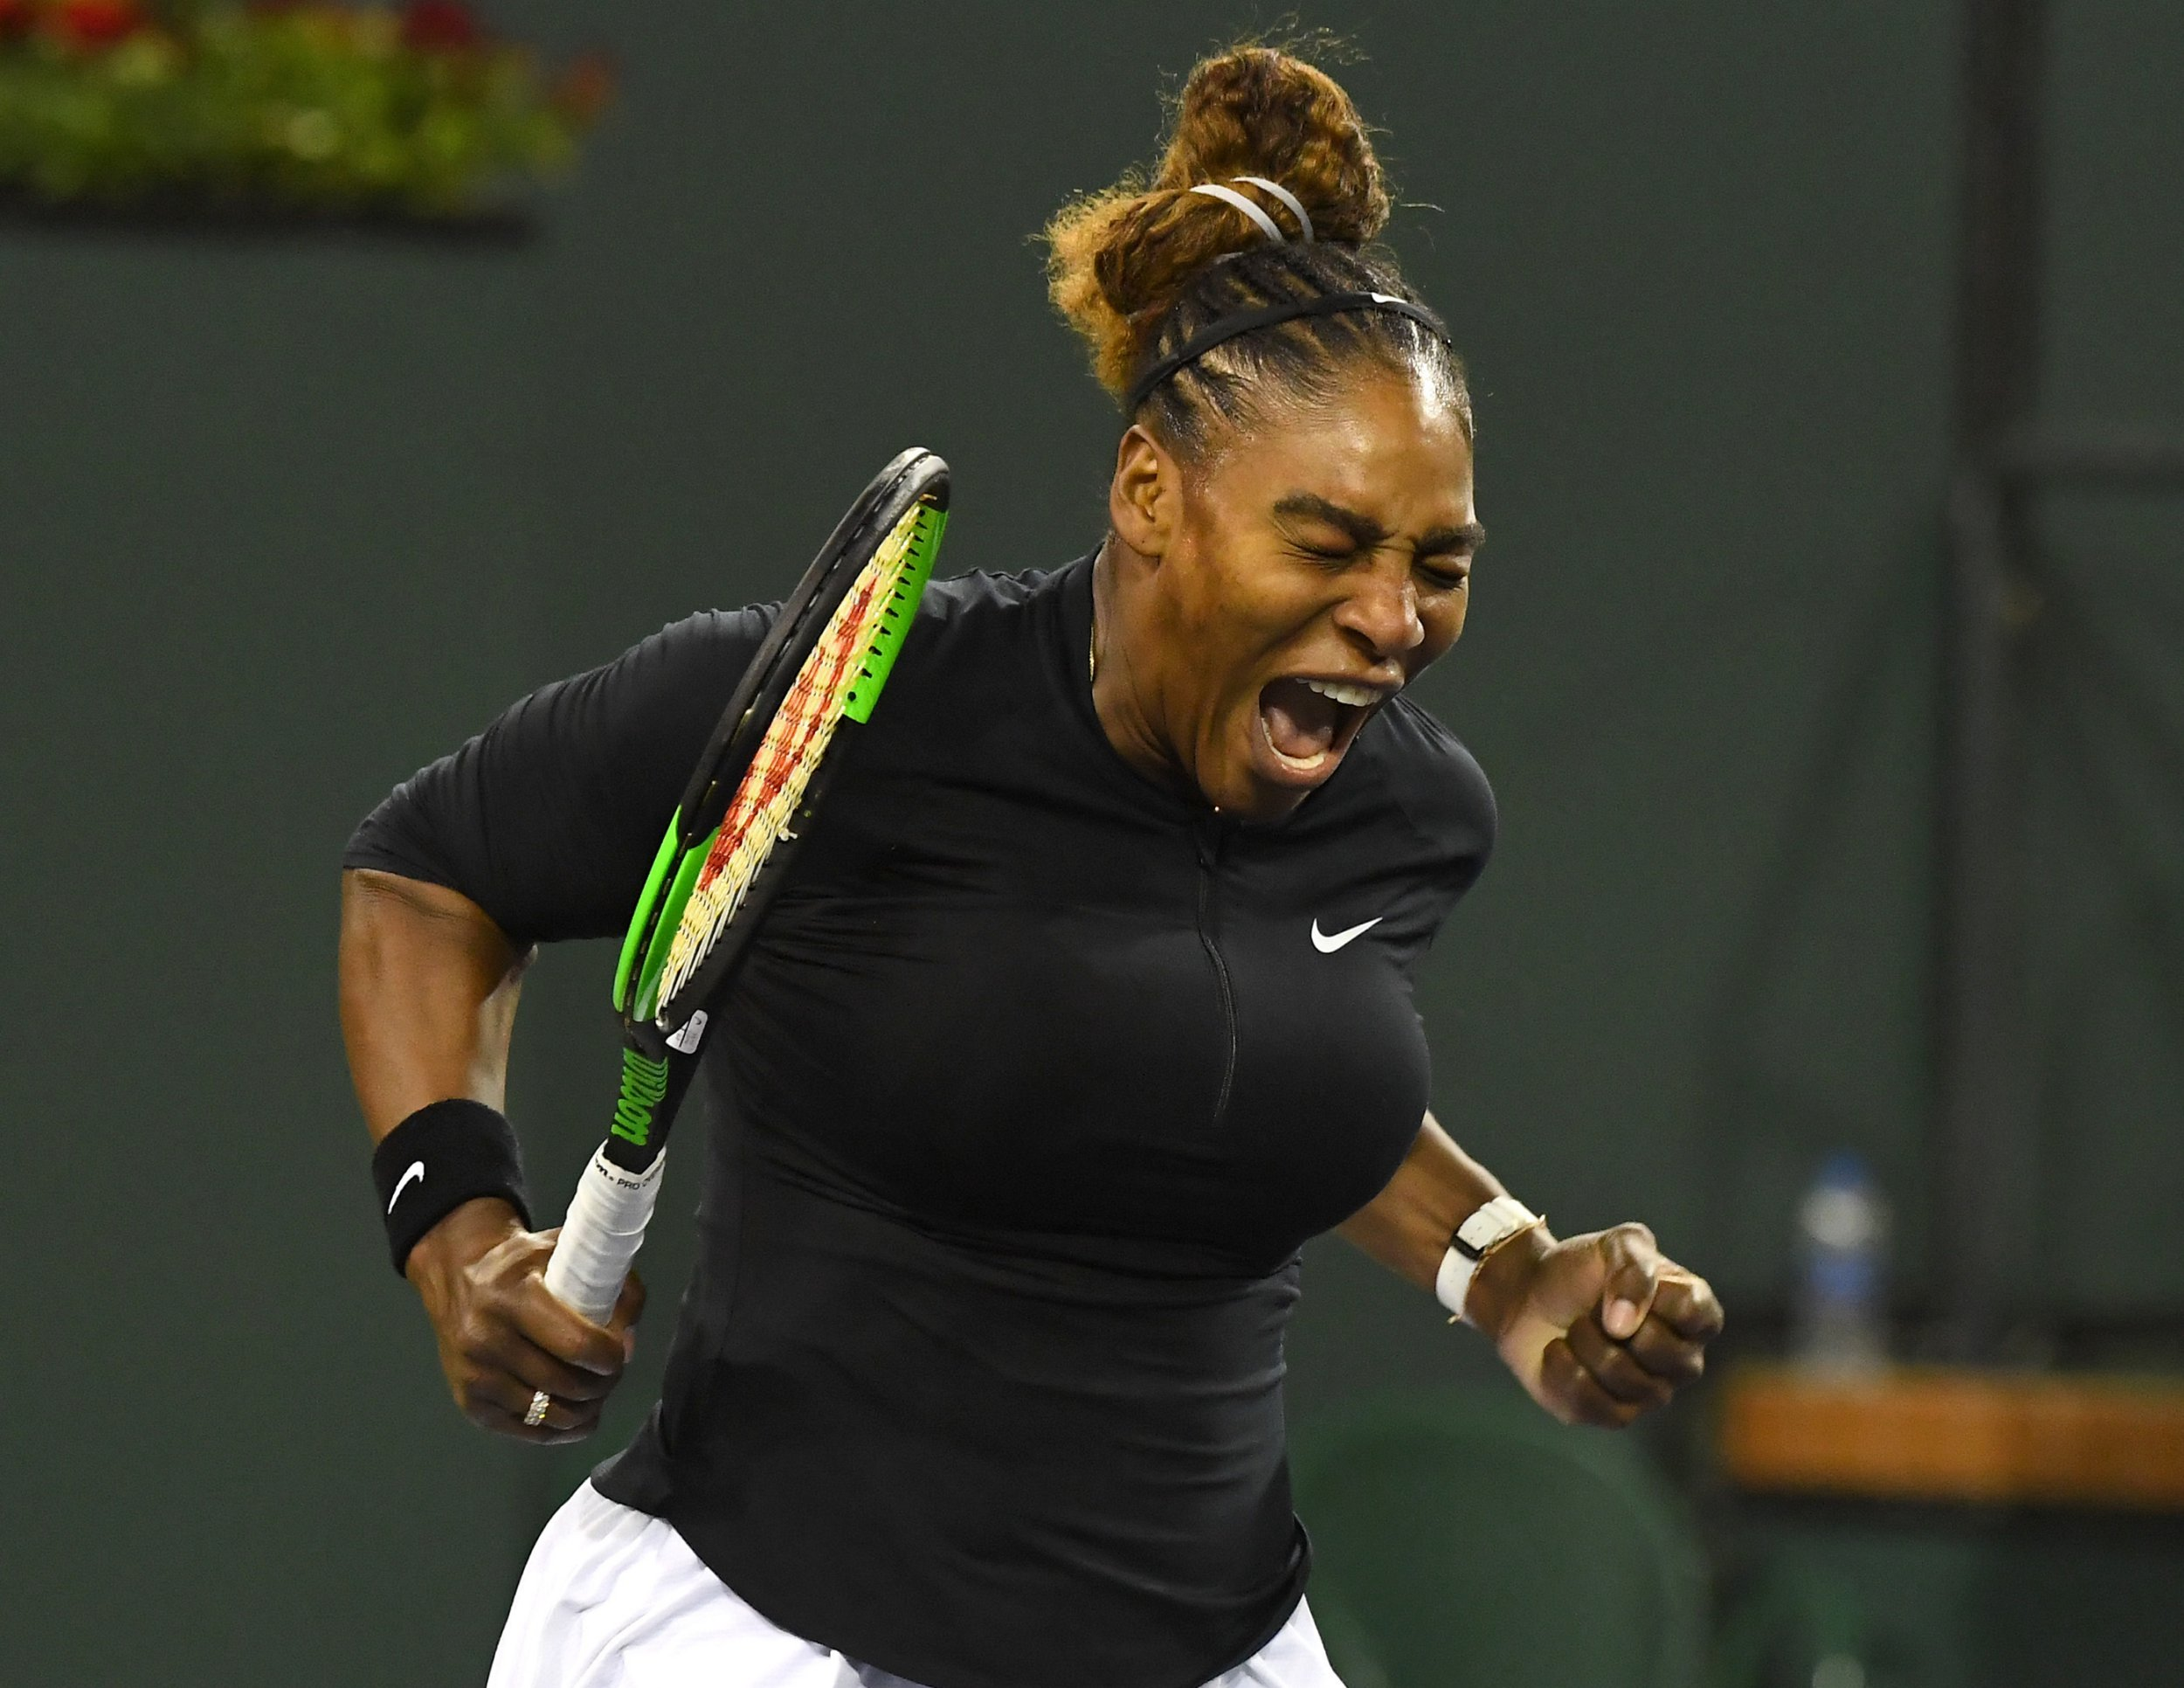 Indian Wells: Serena beats fellow mum Azarenka, Fognini joins Djokovic celebration, Wawrinka edges Evans